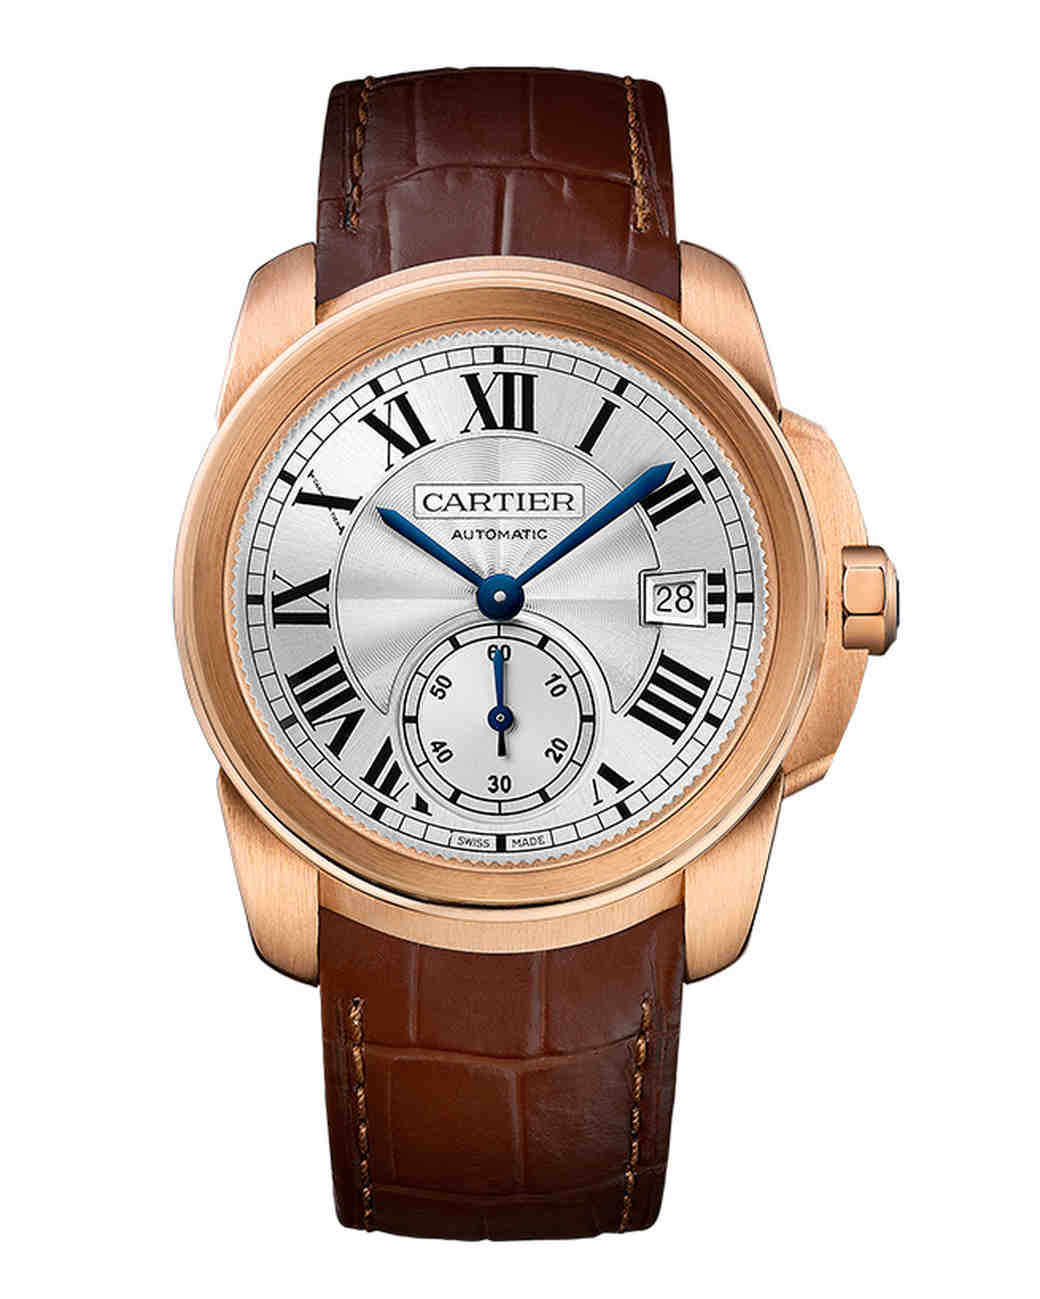 27 Men's Watches That Make an Extra-Special Groom's Gift | Martha ...